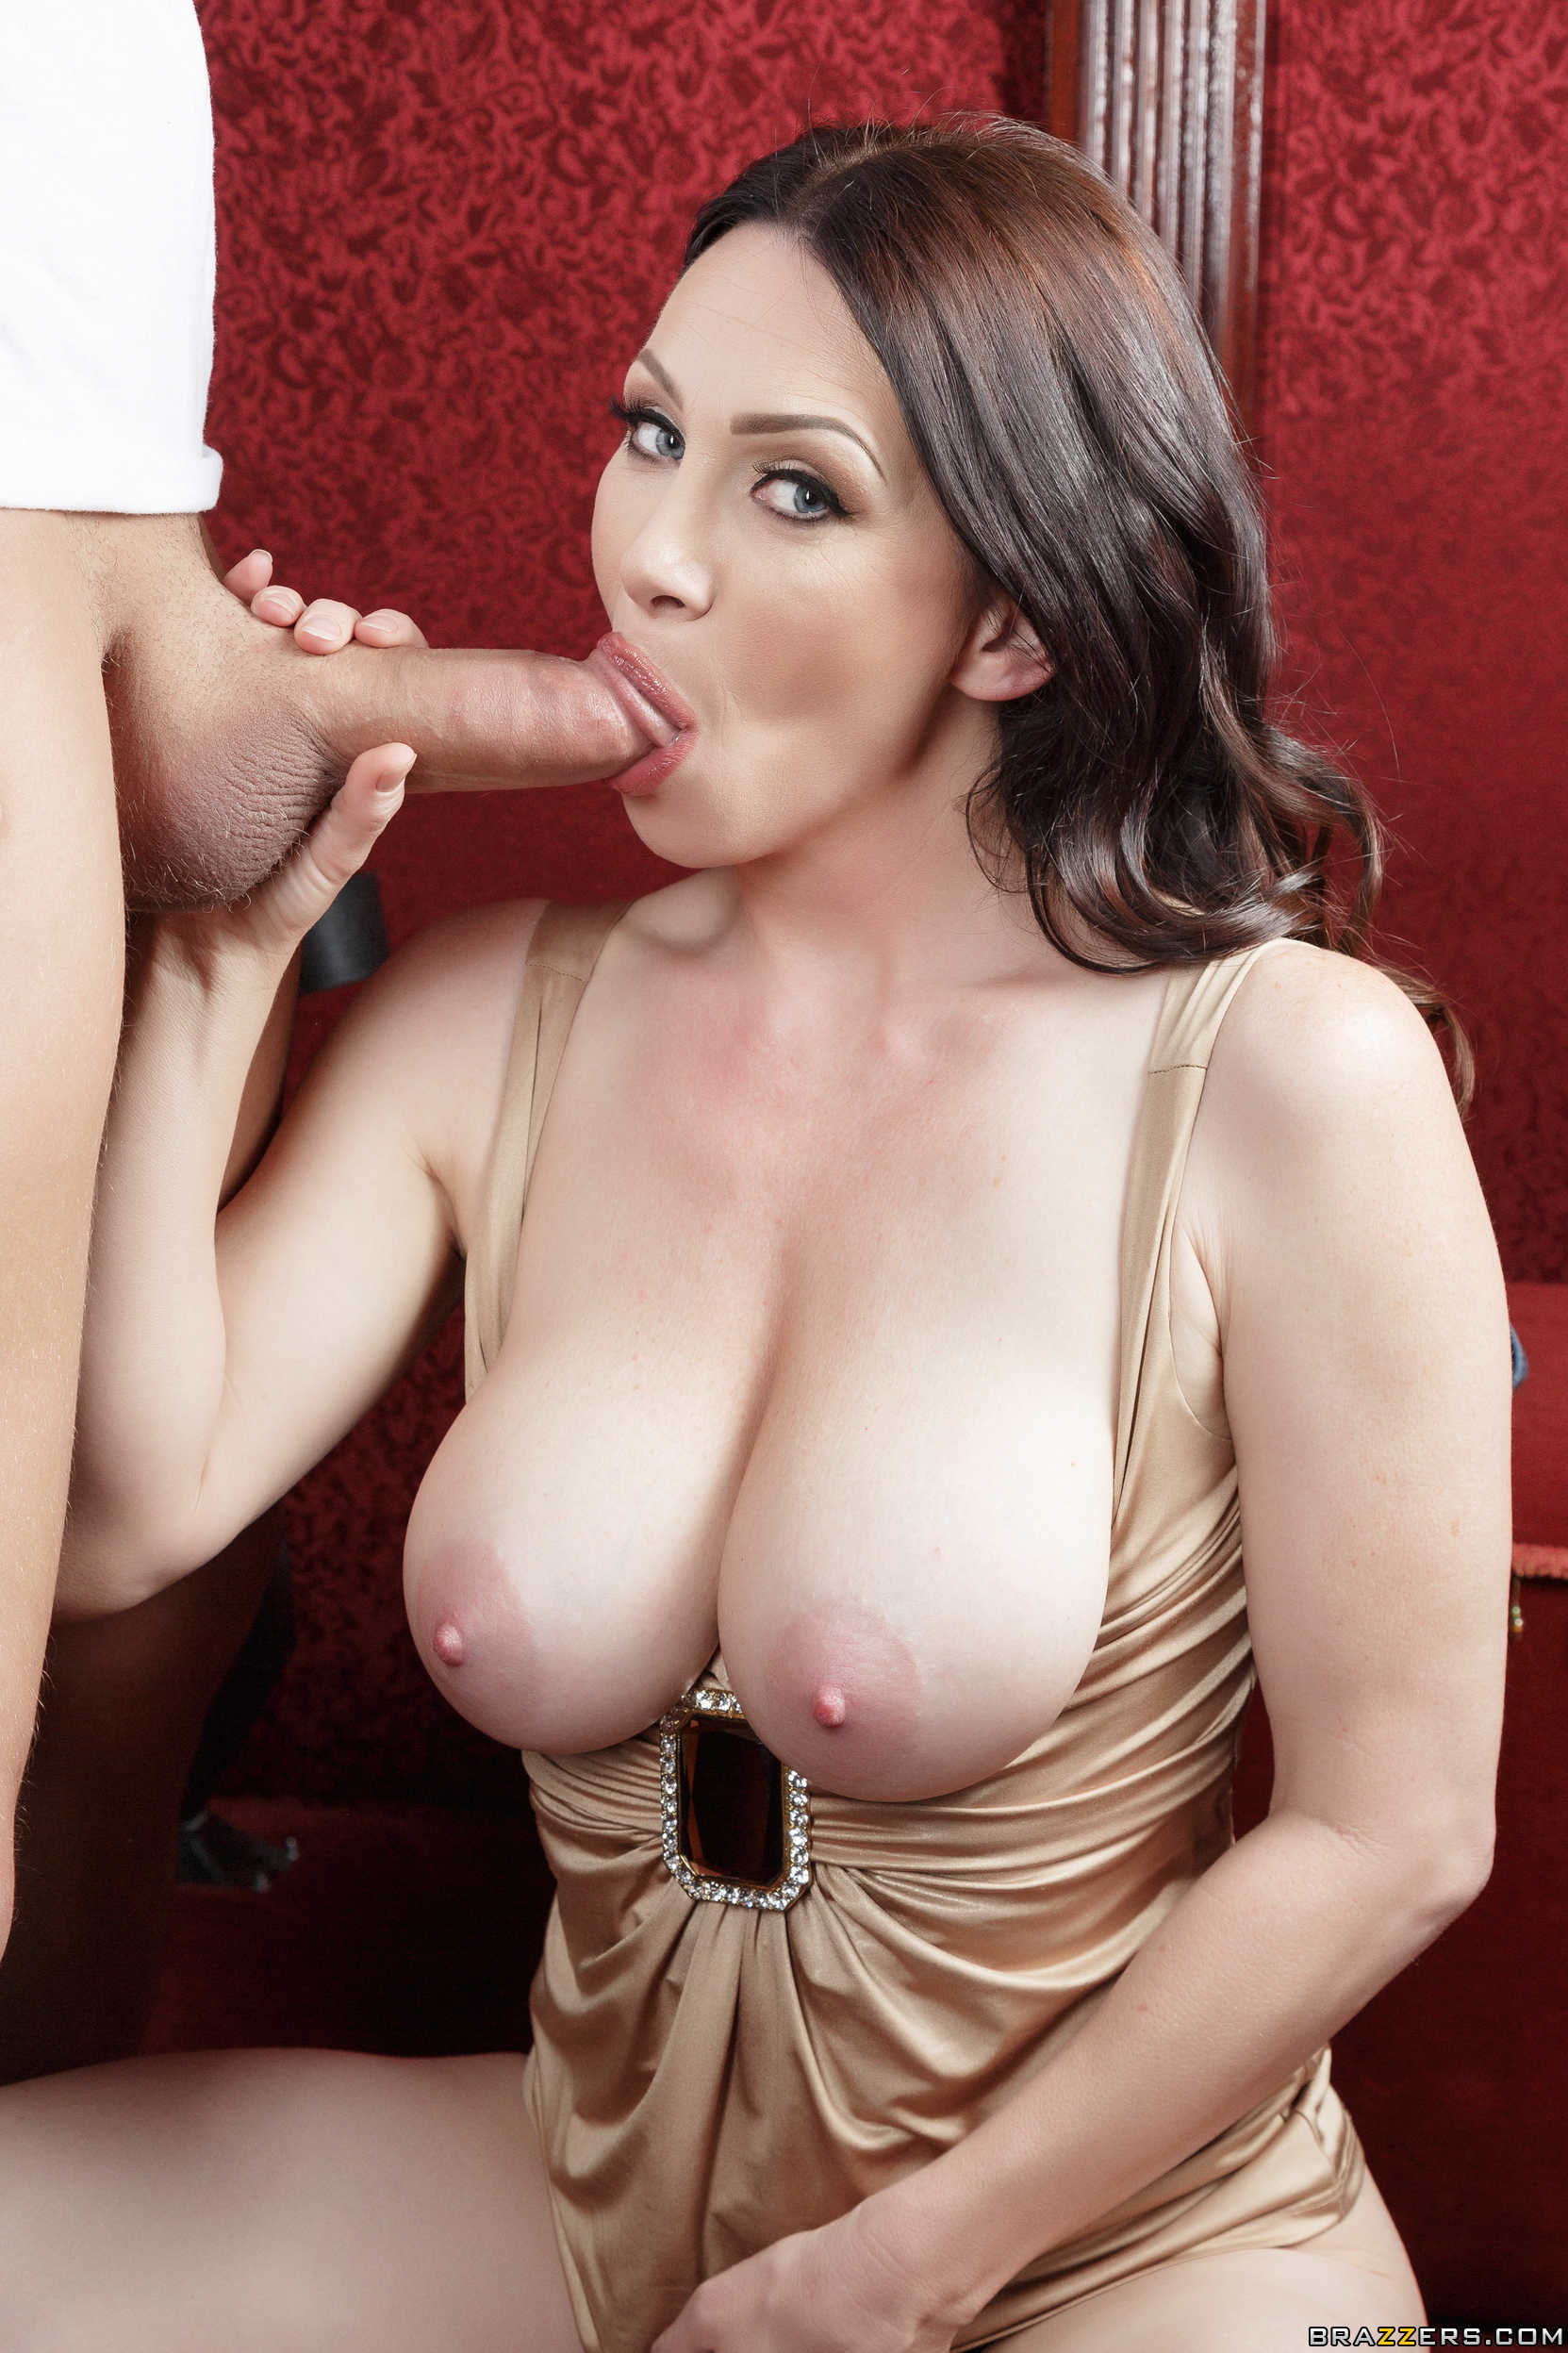 rayveness mom